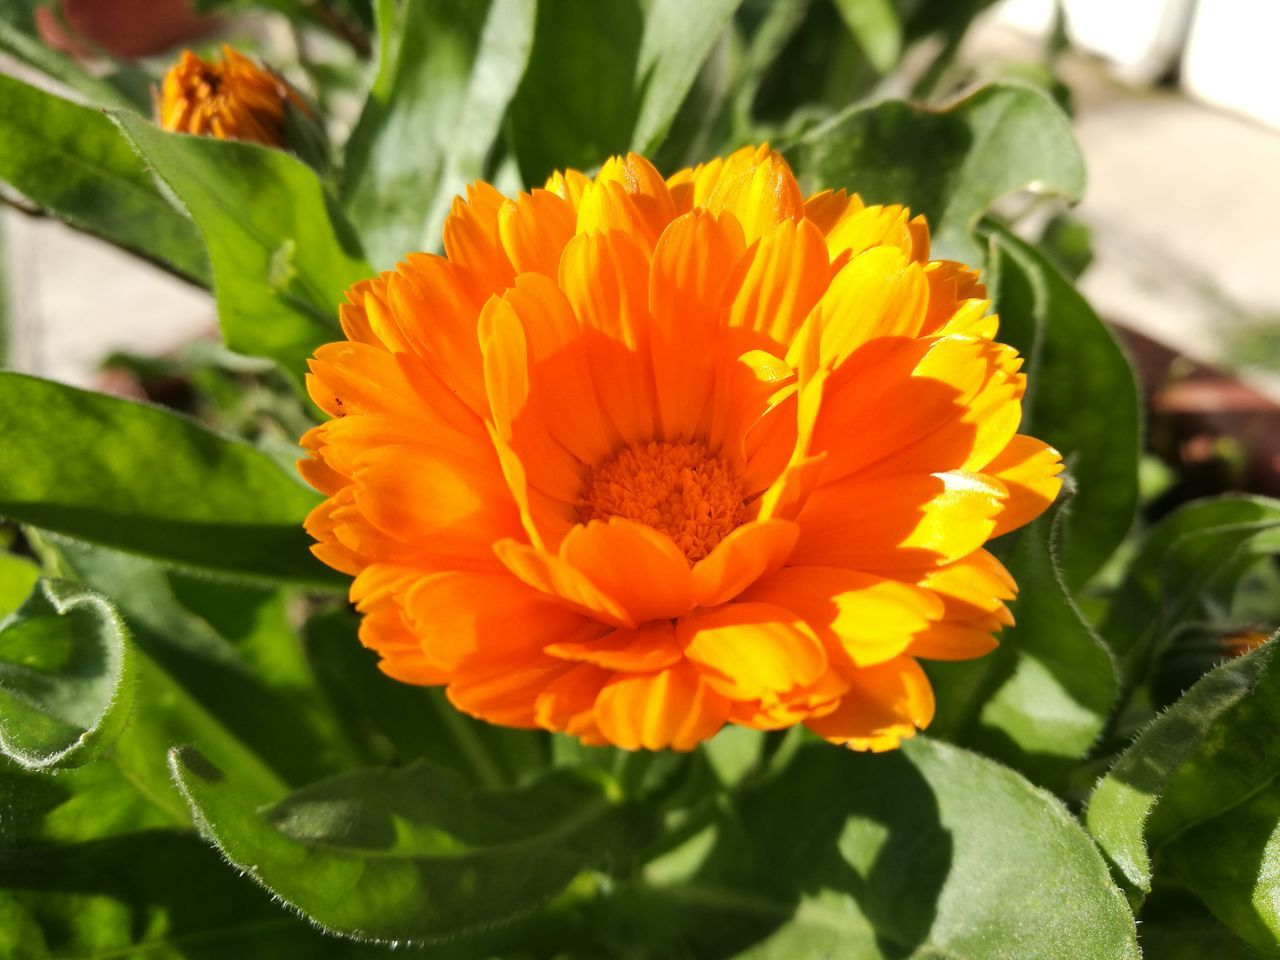 Beauty In Nature Calendula Flower Medicinal Plant Yellow Flower Green Background Shiny